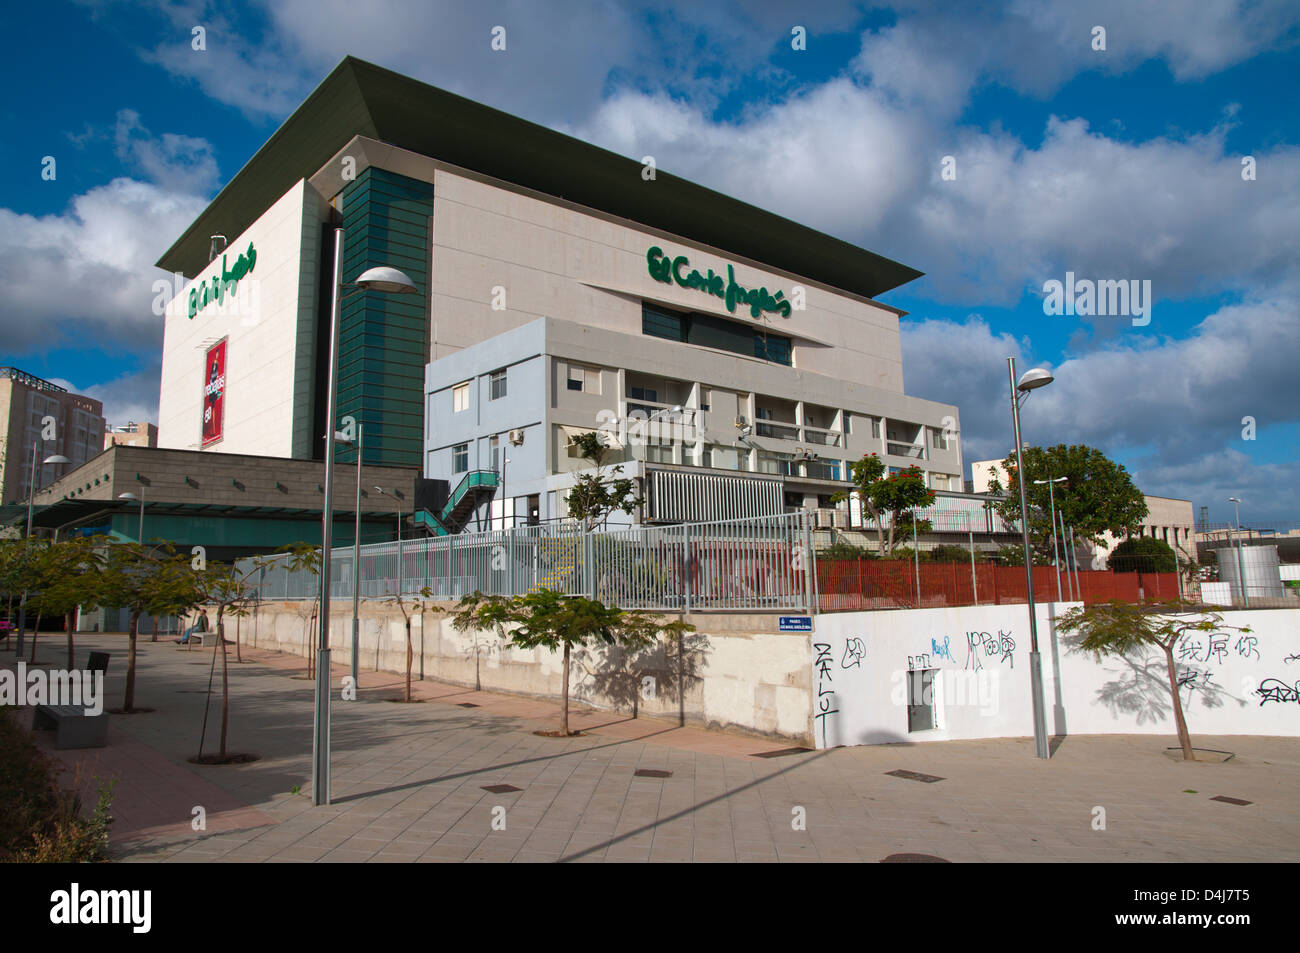 5048b9c102182 Le grand magasin El Corte Ingles ville de Santa Cruz Tenerife island Iles  Canaries Espagne Photo